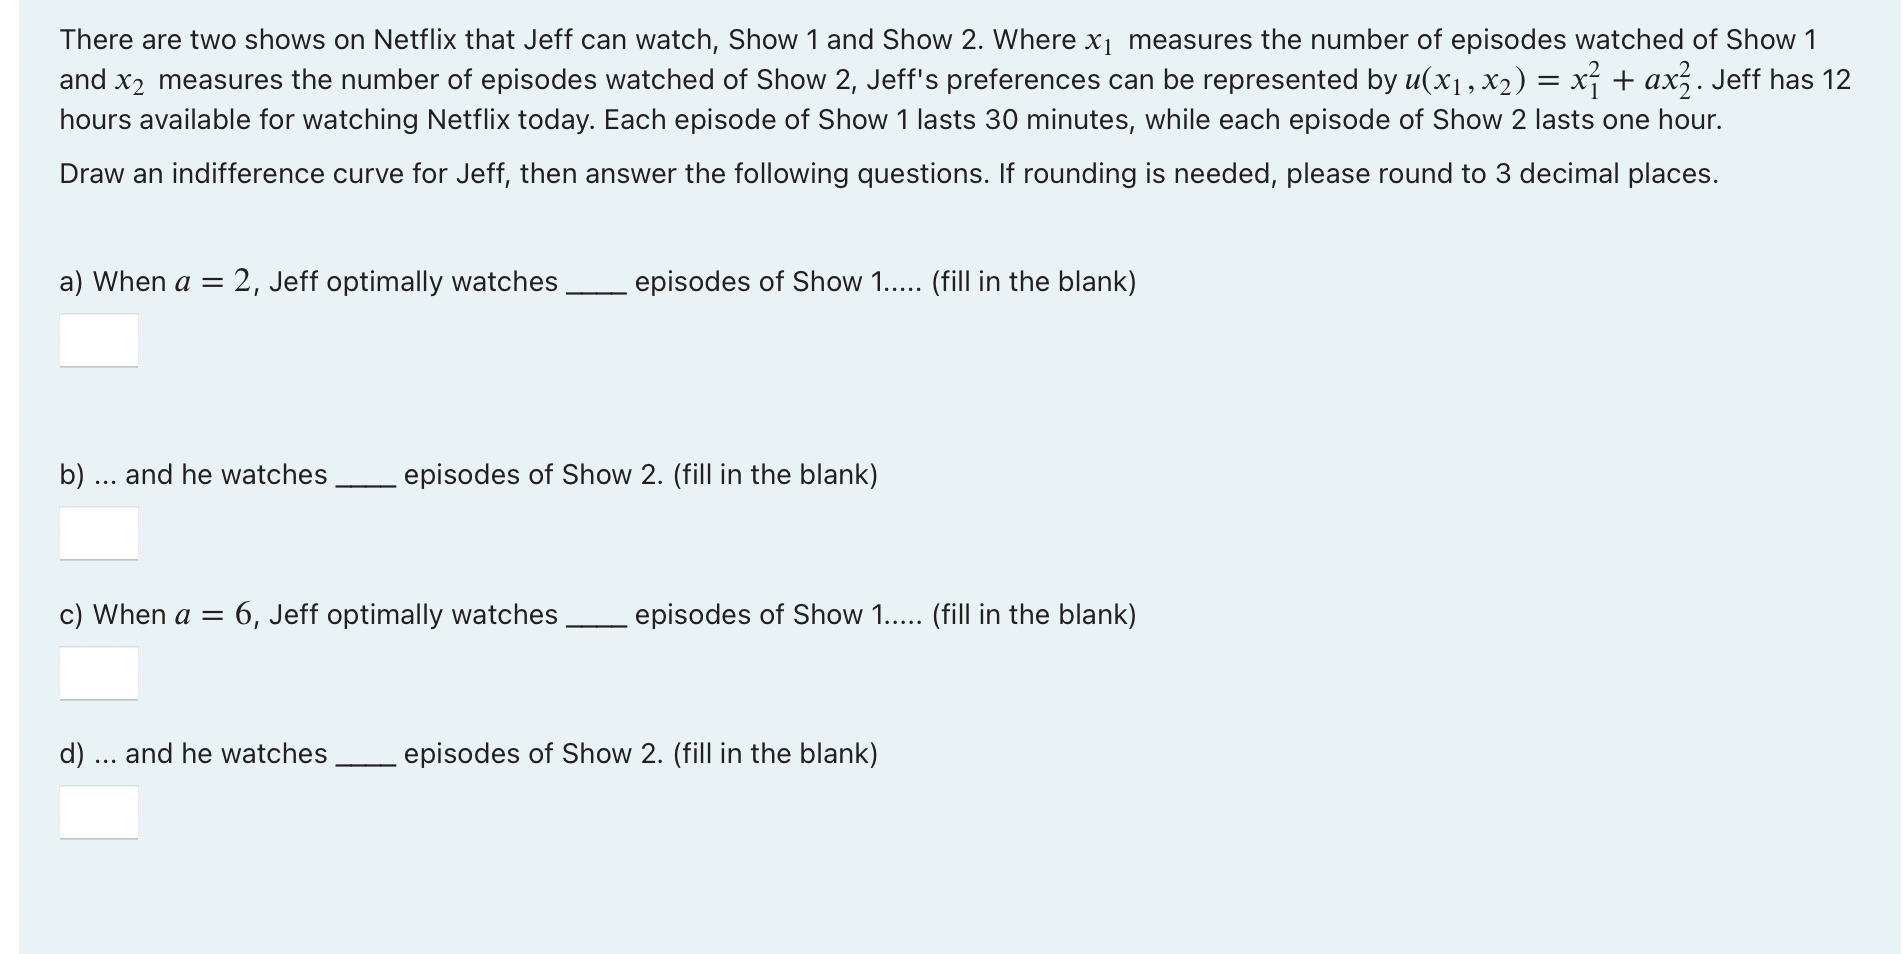 There are two shows on Netflix that Jeff can watch, Show 1 and Show 2. Where x1 measures the number of episodes watched of Sh